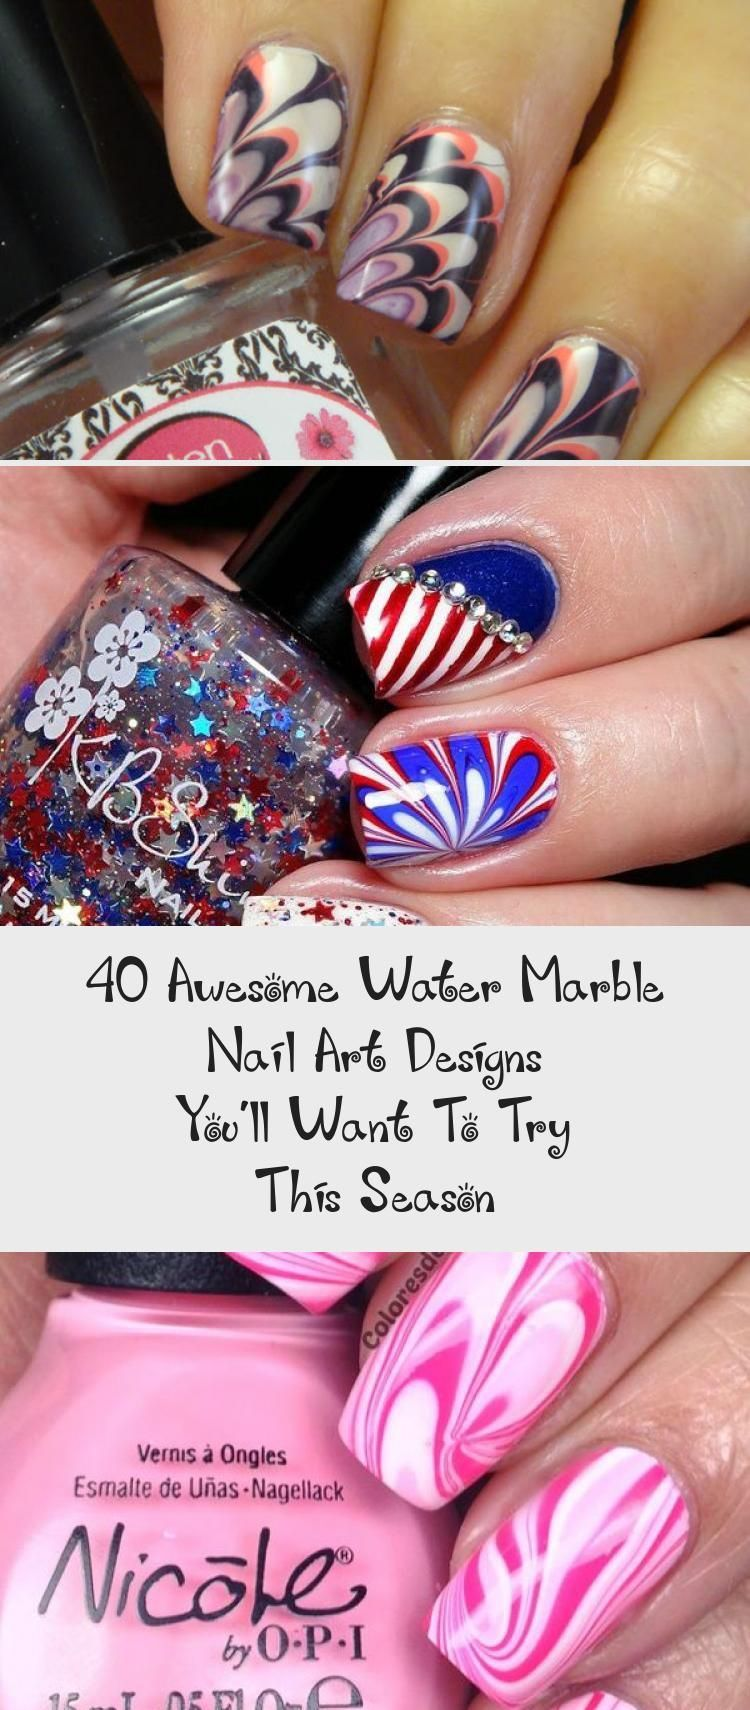 40 Awesome Water Marble Nail Art Designs You Ll Want To Try This Season Makeup Art Awesome Beigemarble In 2020 Water Marble Nail Art Marble Nail Art Marble Nails